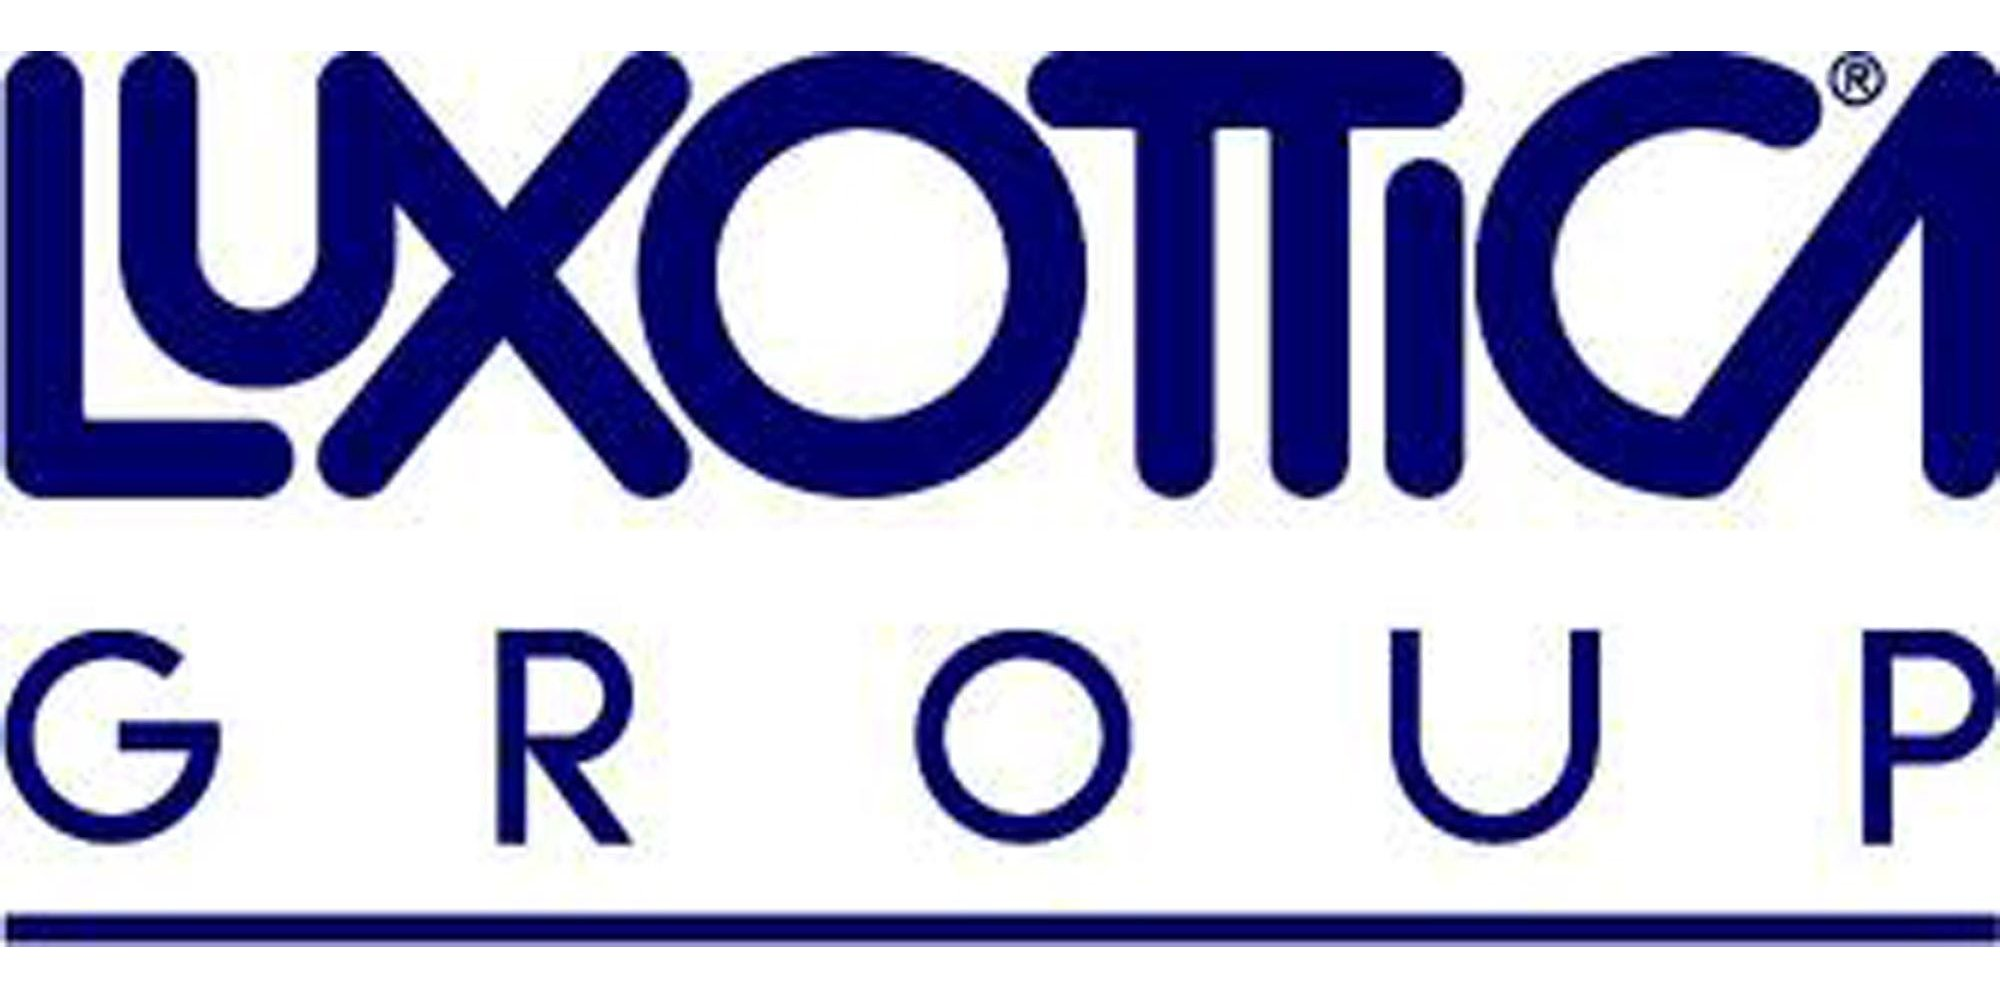 luxottica group: